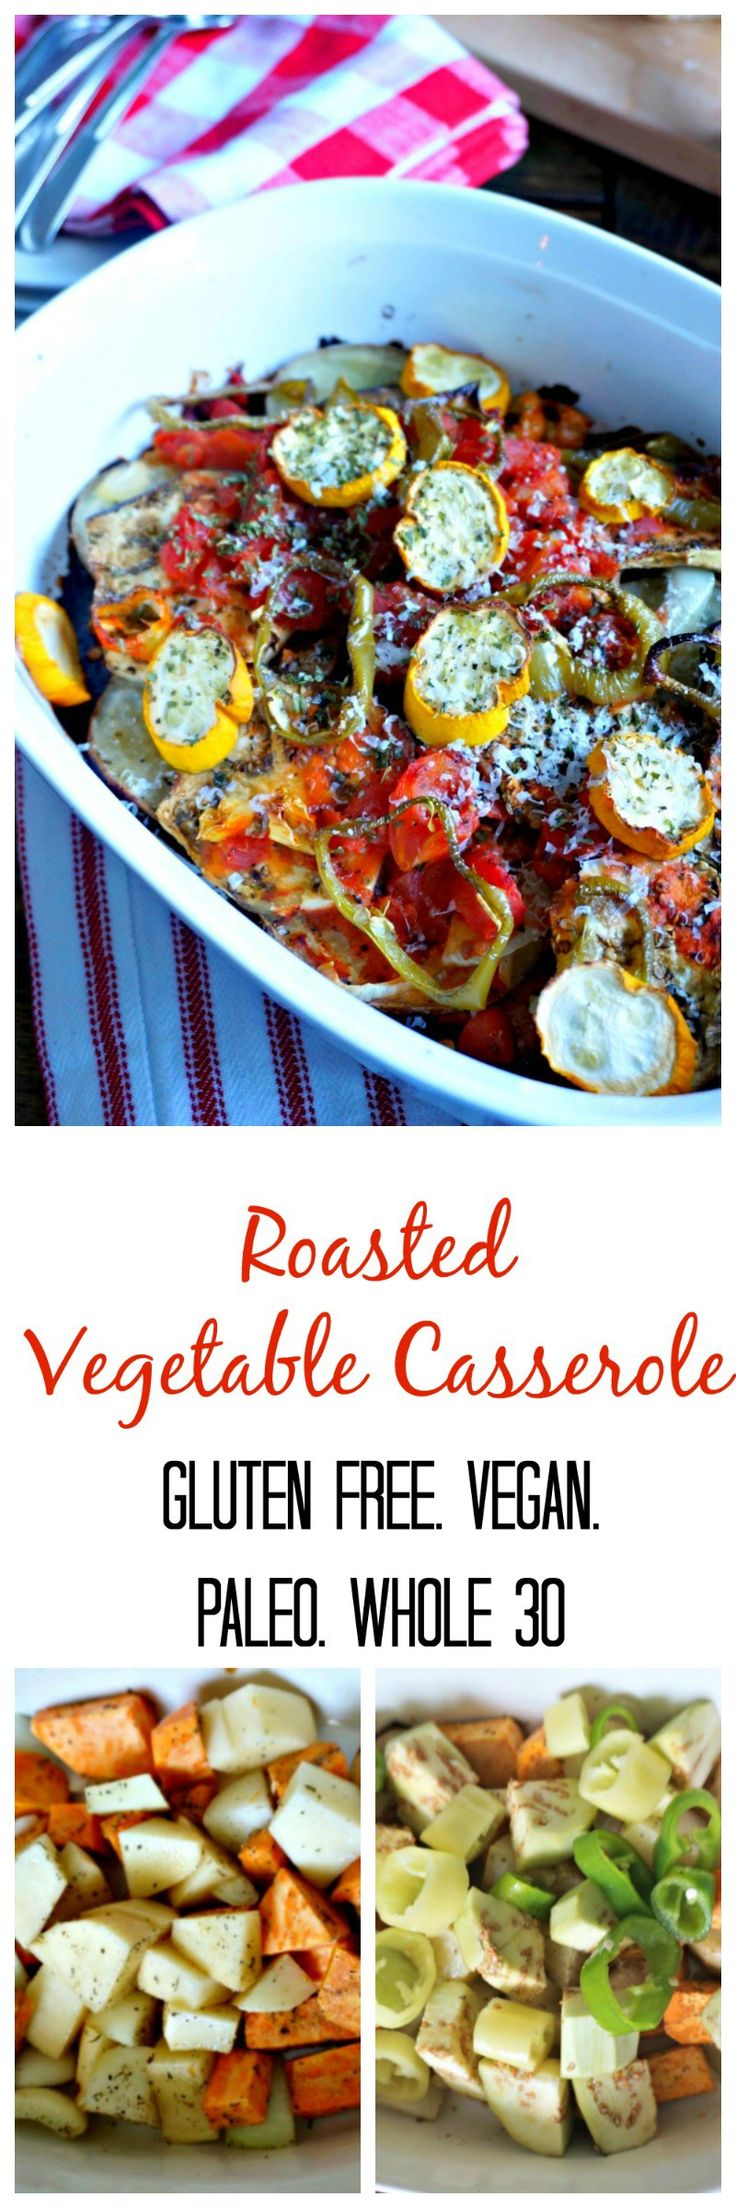 Roasted Vegetable Casserole: A medley of vegetables are tossed with Italian herbs and roasted to perfection, creating the perfect Vegetarian Entree or hearty side dish. #SundaySupper